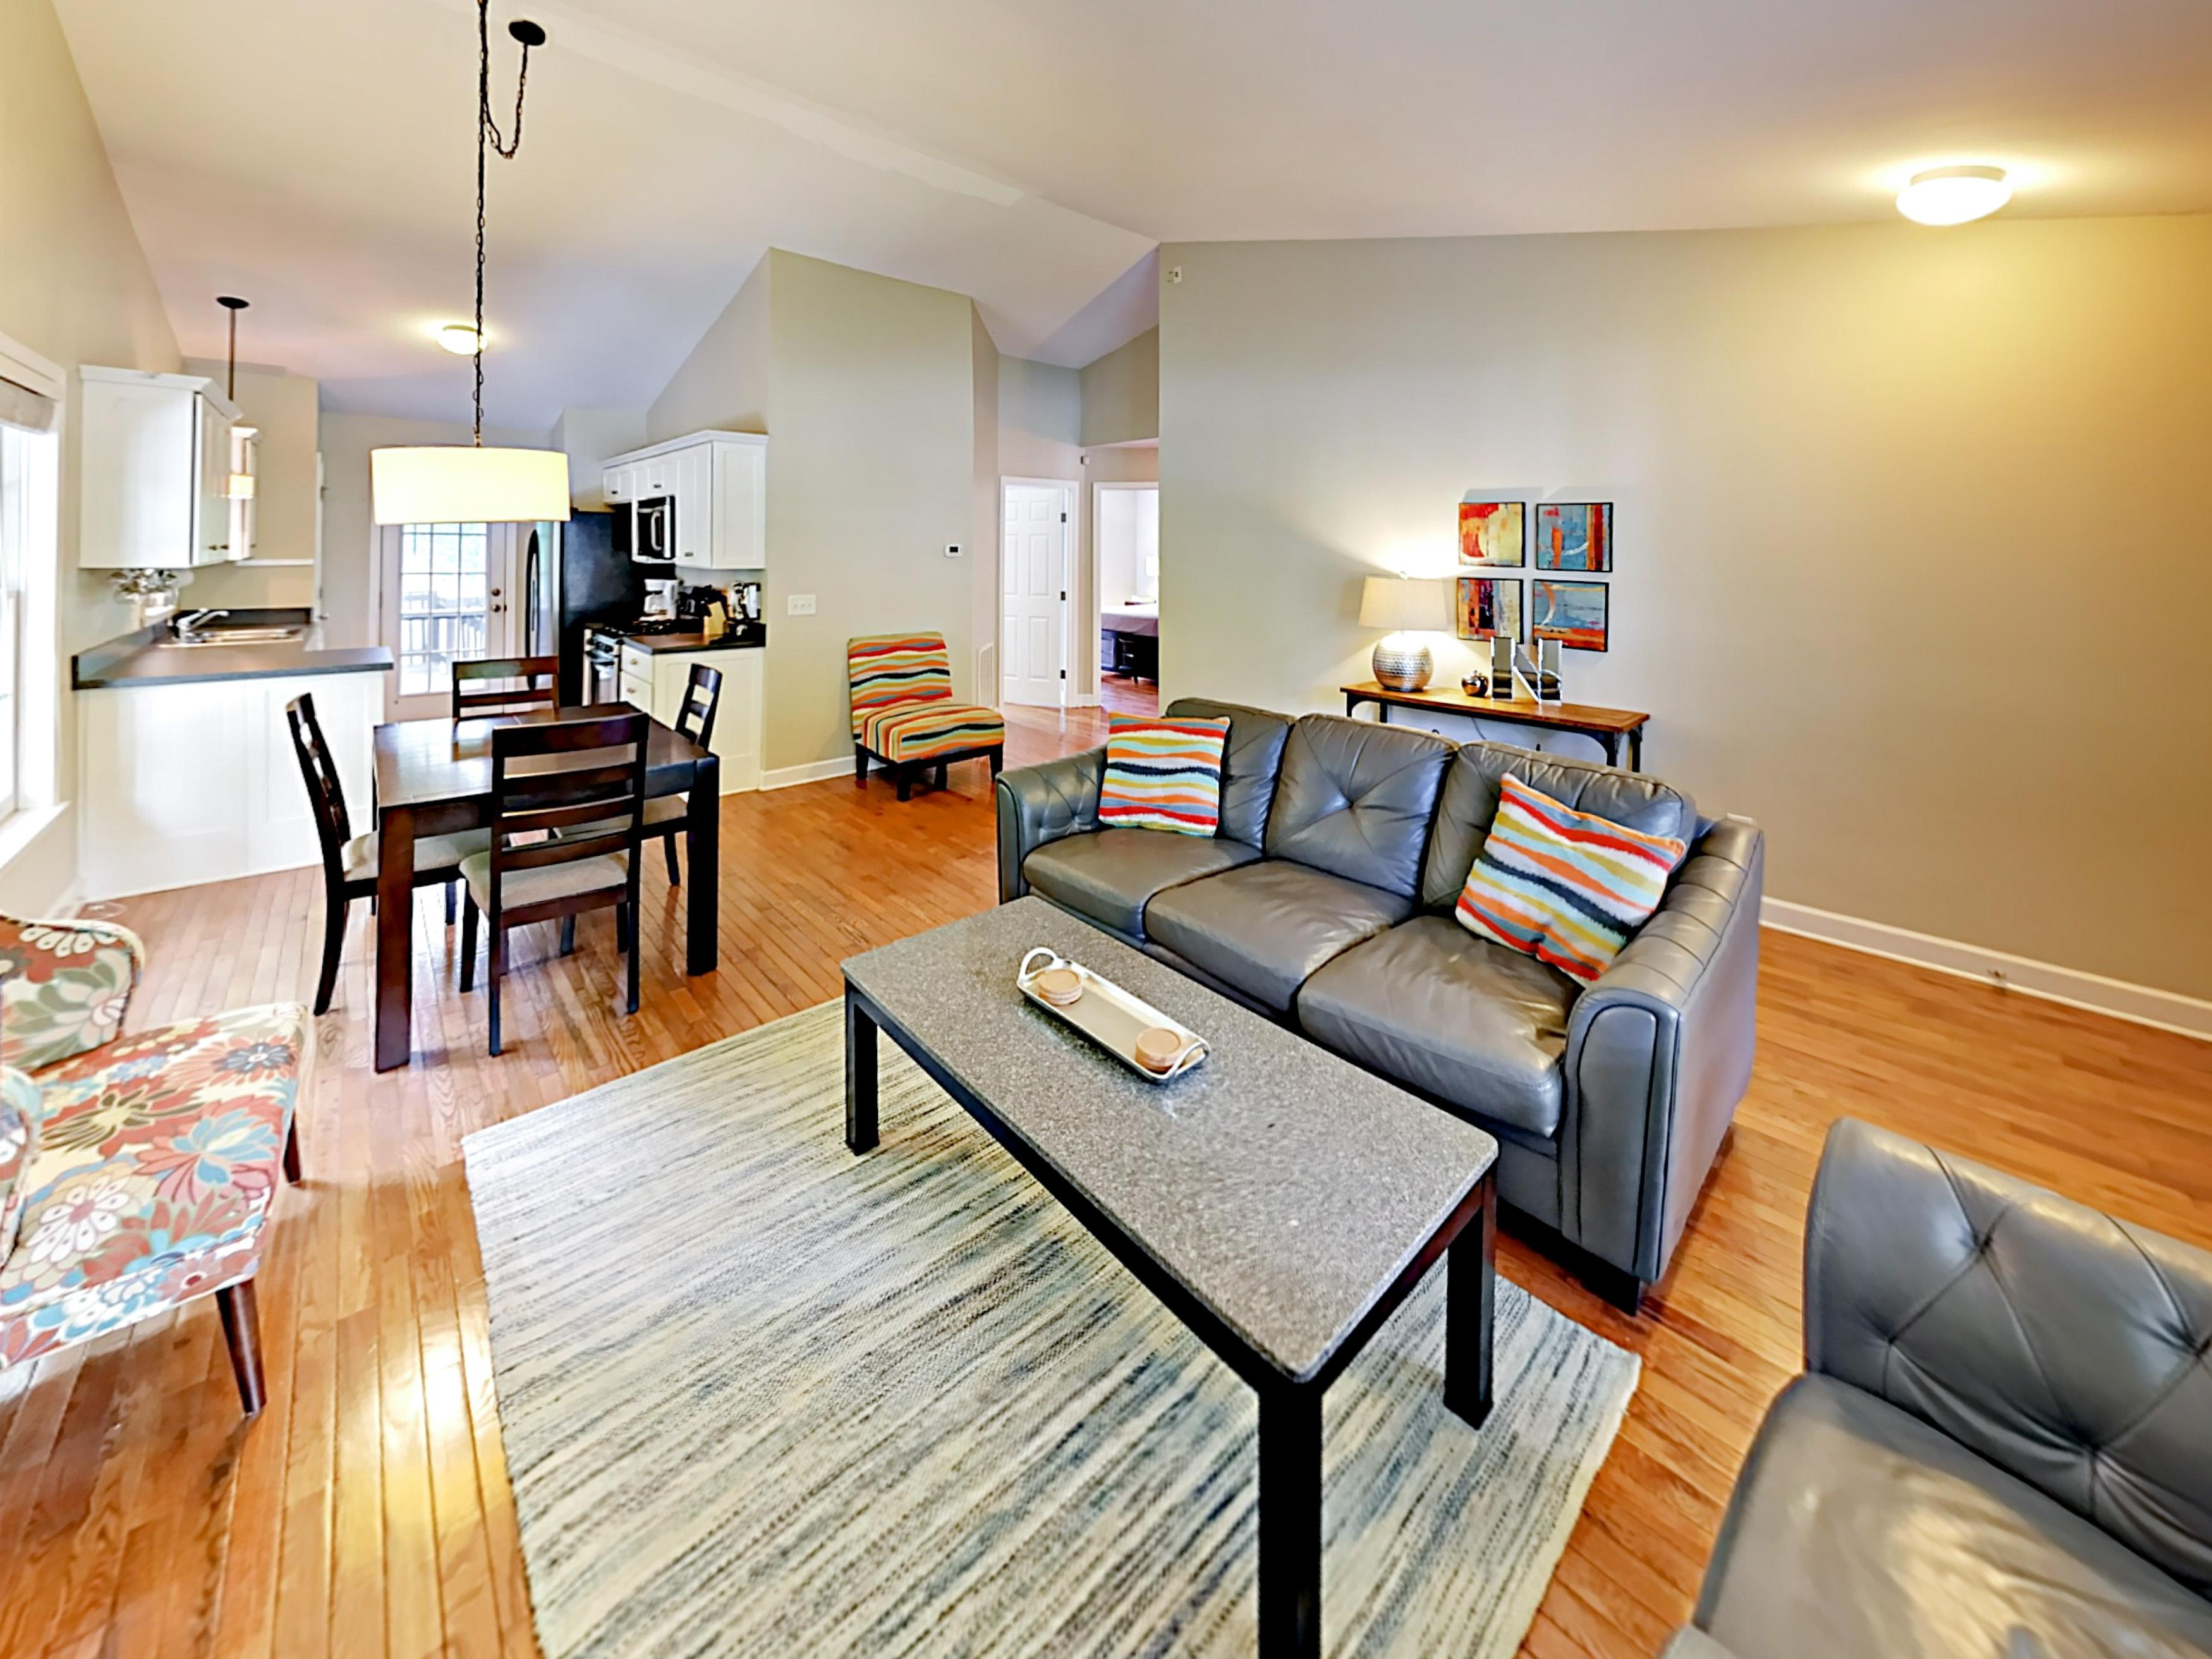 Welcome to Nashville! This house is professionally managed by TurnKey Vacation Rentals.